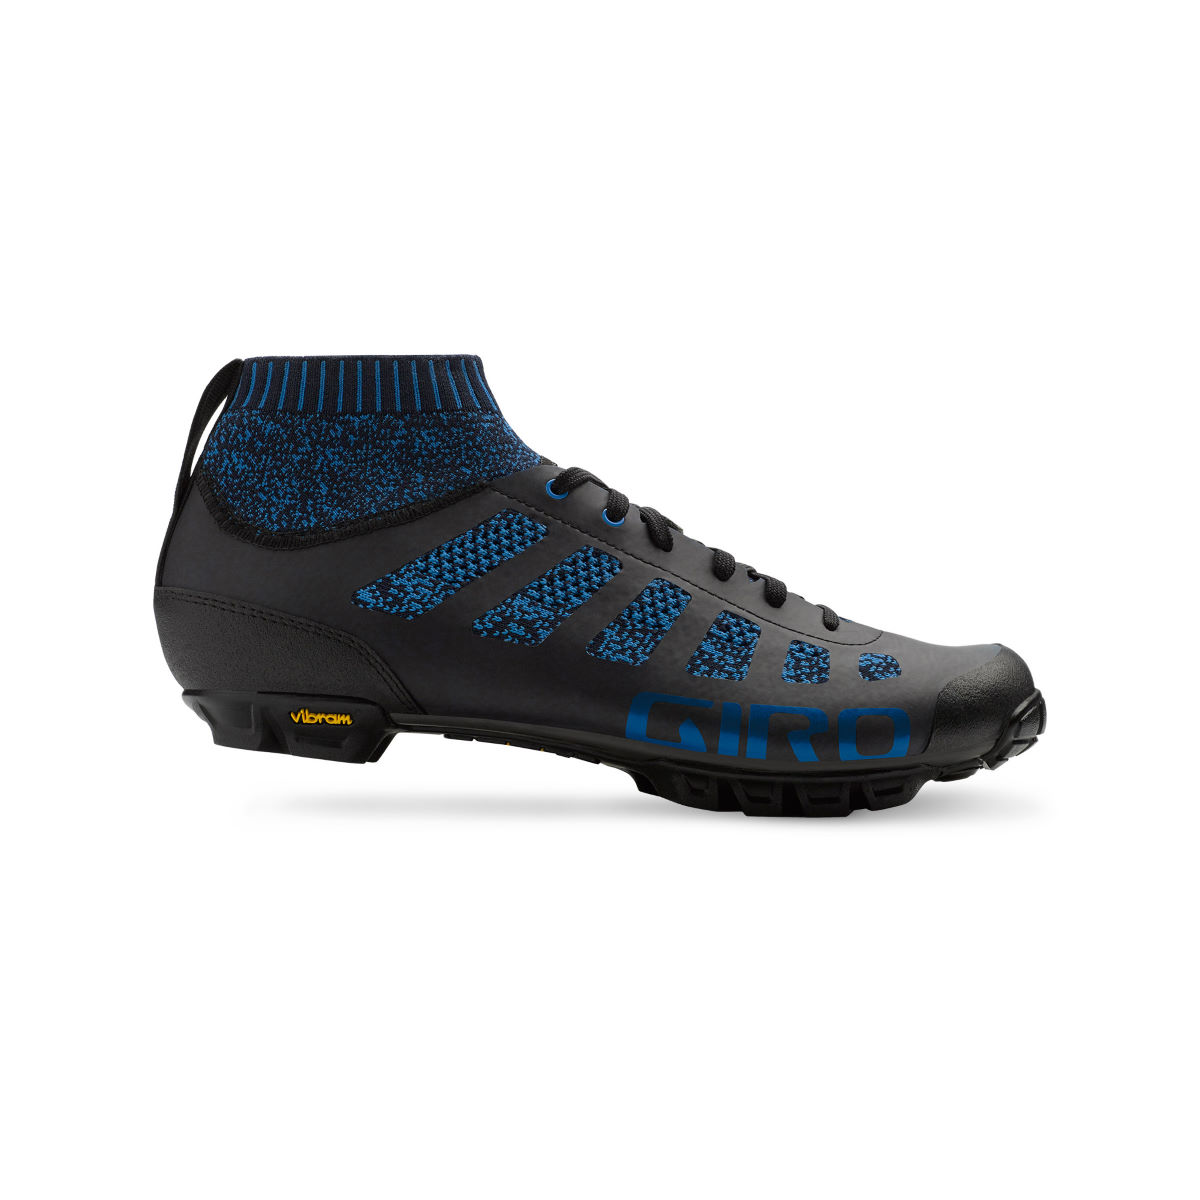 Giro Empire VR70 Knit Off Road Shoe - 41 Midnight/Blue | Offroad Shoes